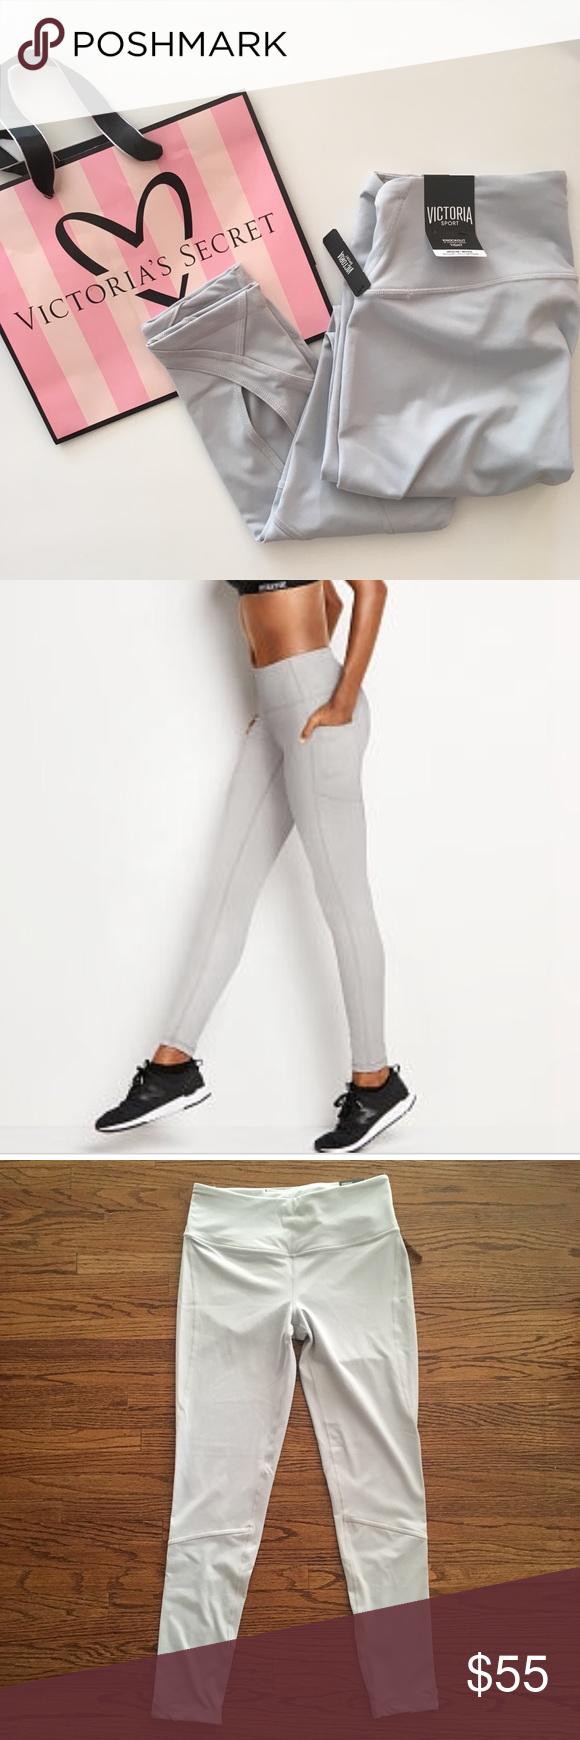 185f2b25e26bd NEW Victoria's Secret Sport Knockout Tight Sz M Brand new with tags Knockout  Tight by Victoria's